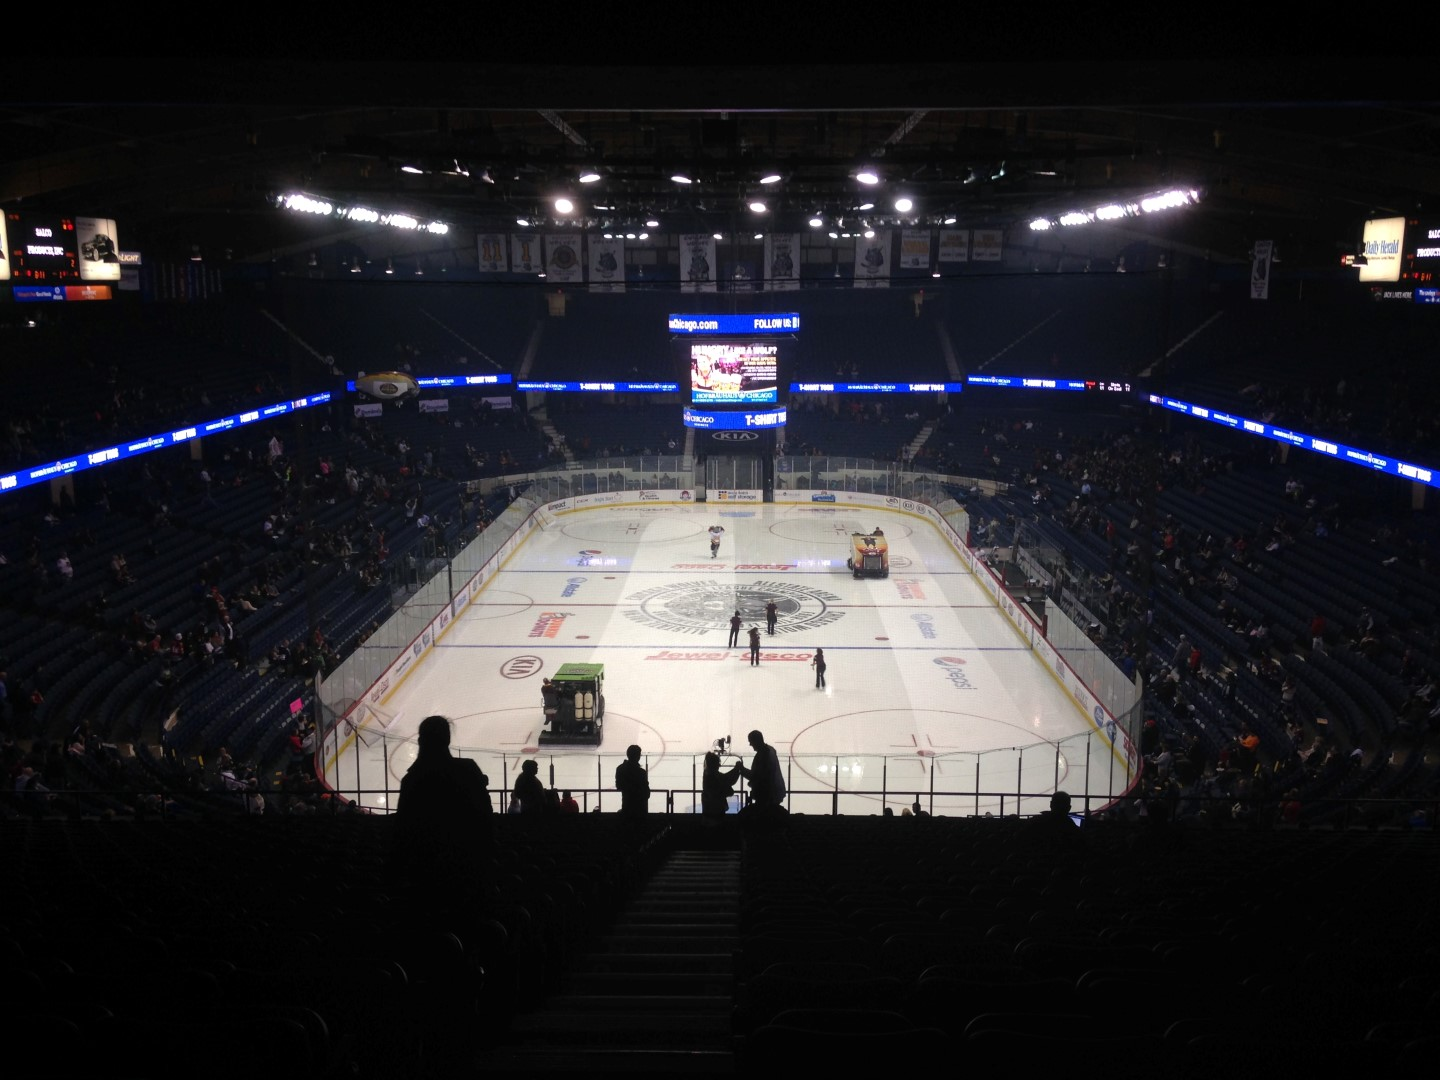 Wolves vs Admirals @ Allstate Arena